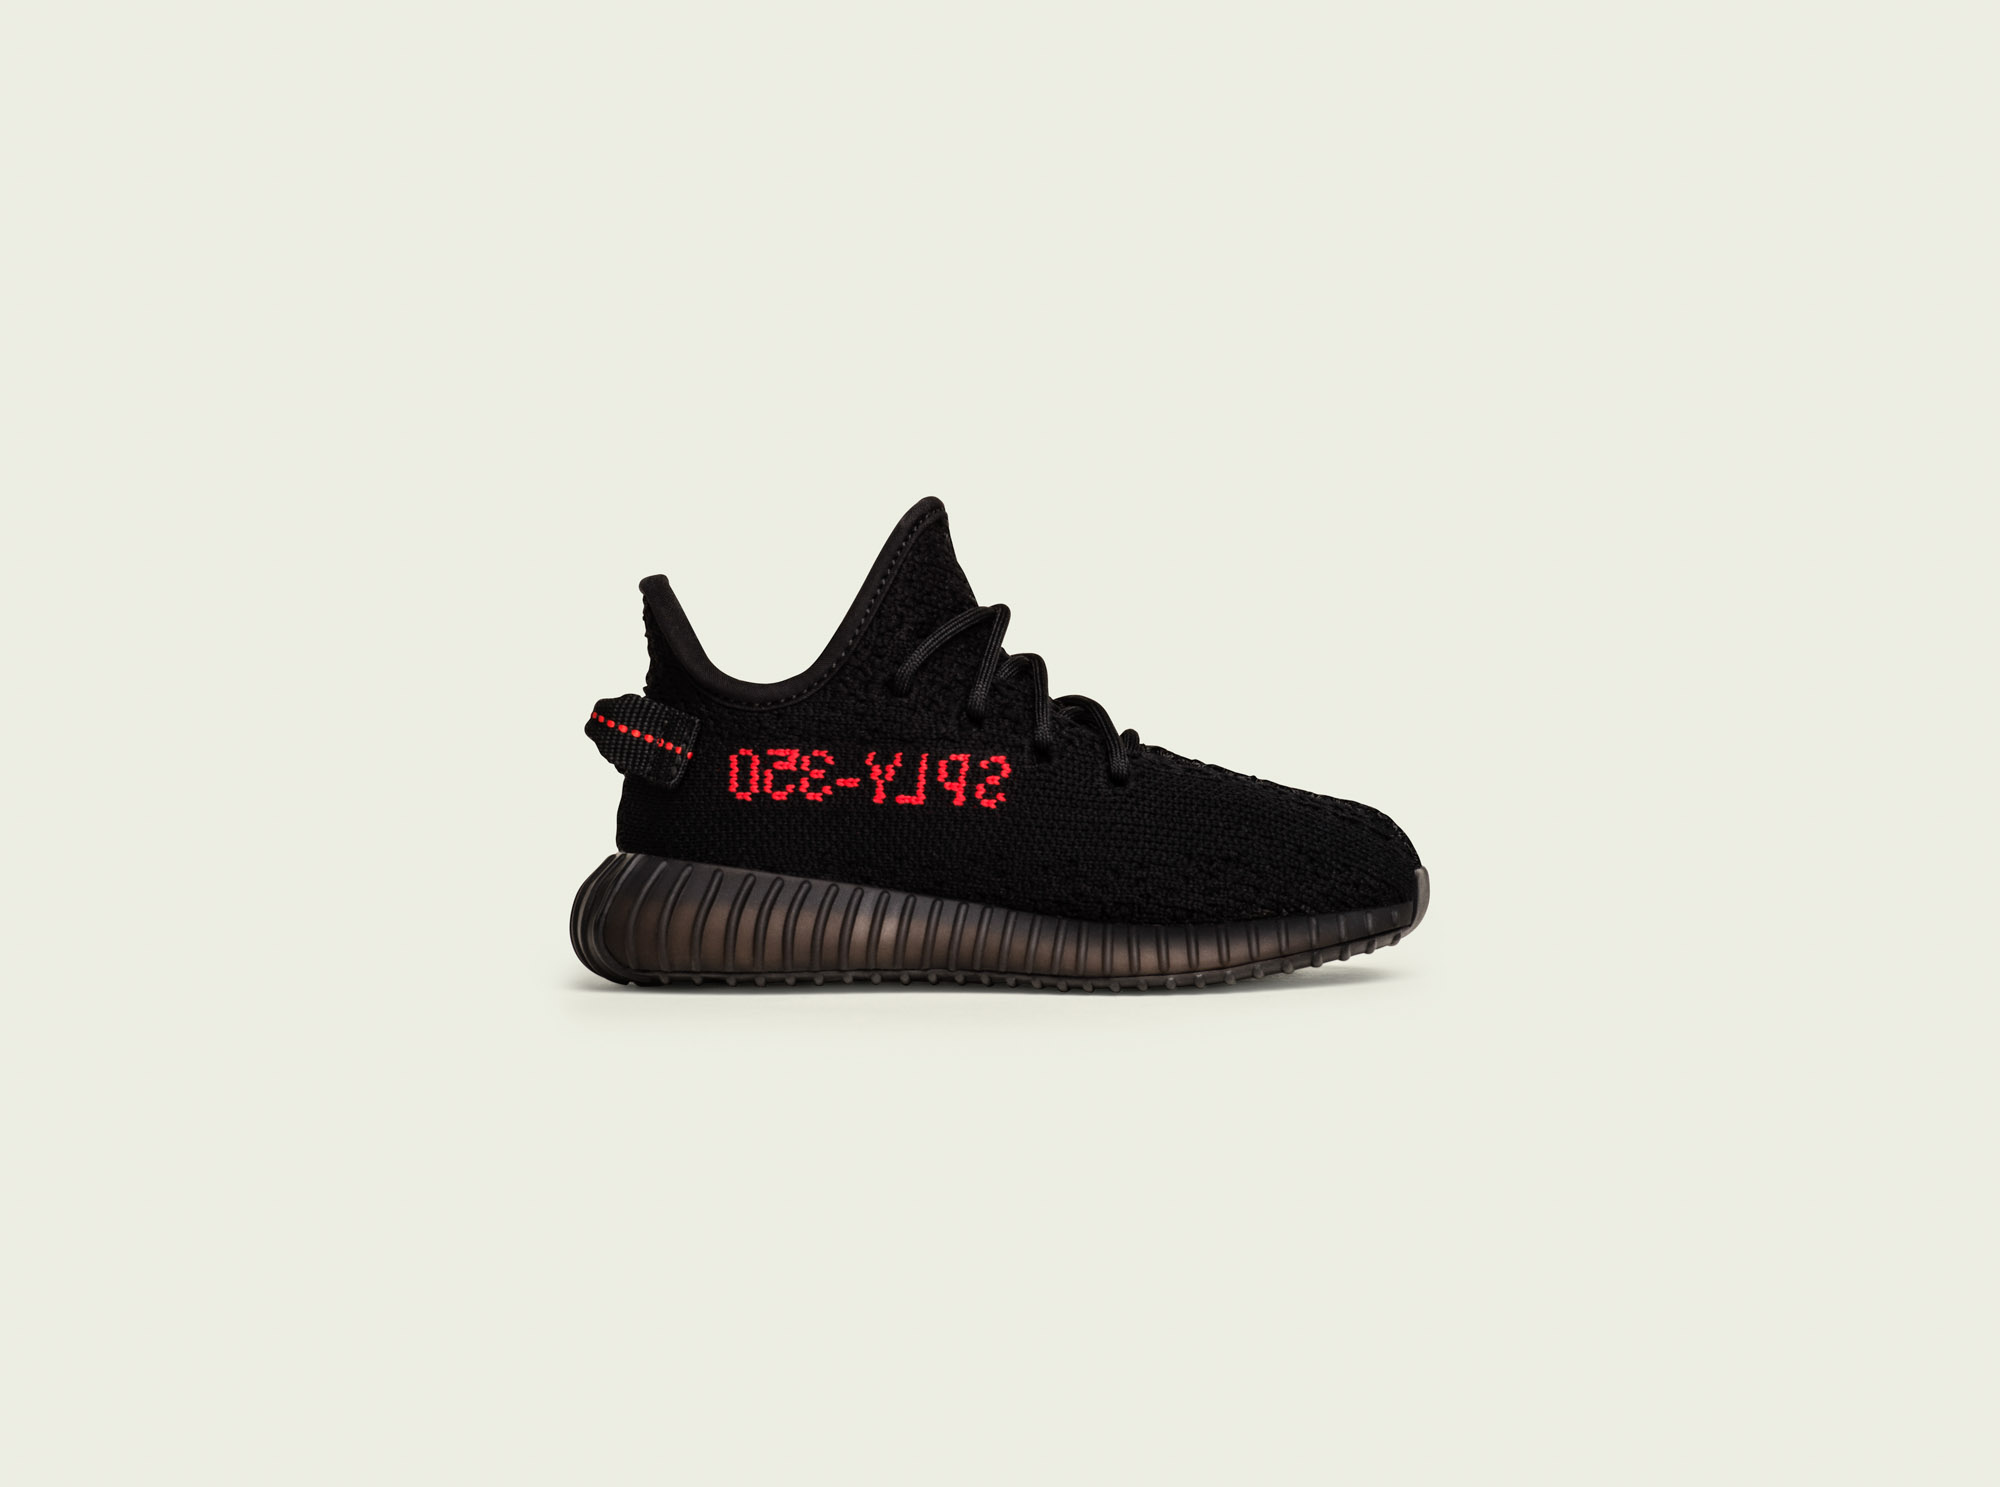 YEEZY Boost 350 V2 'Bred' (UK 10) Shoes for sale in Jalan Ipoh